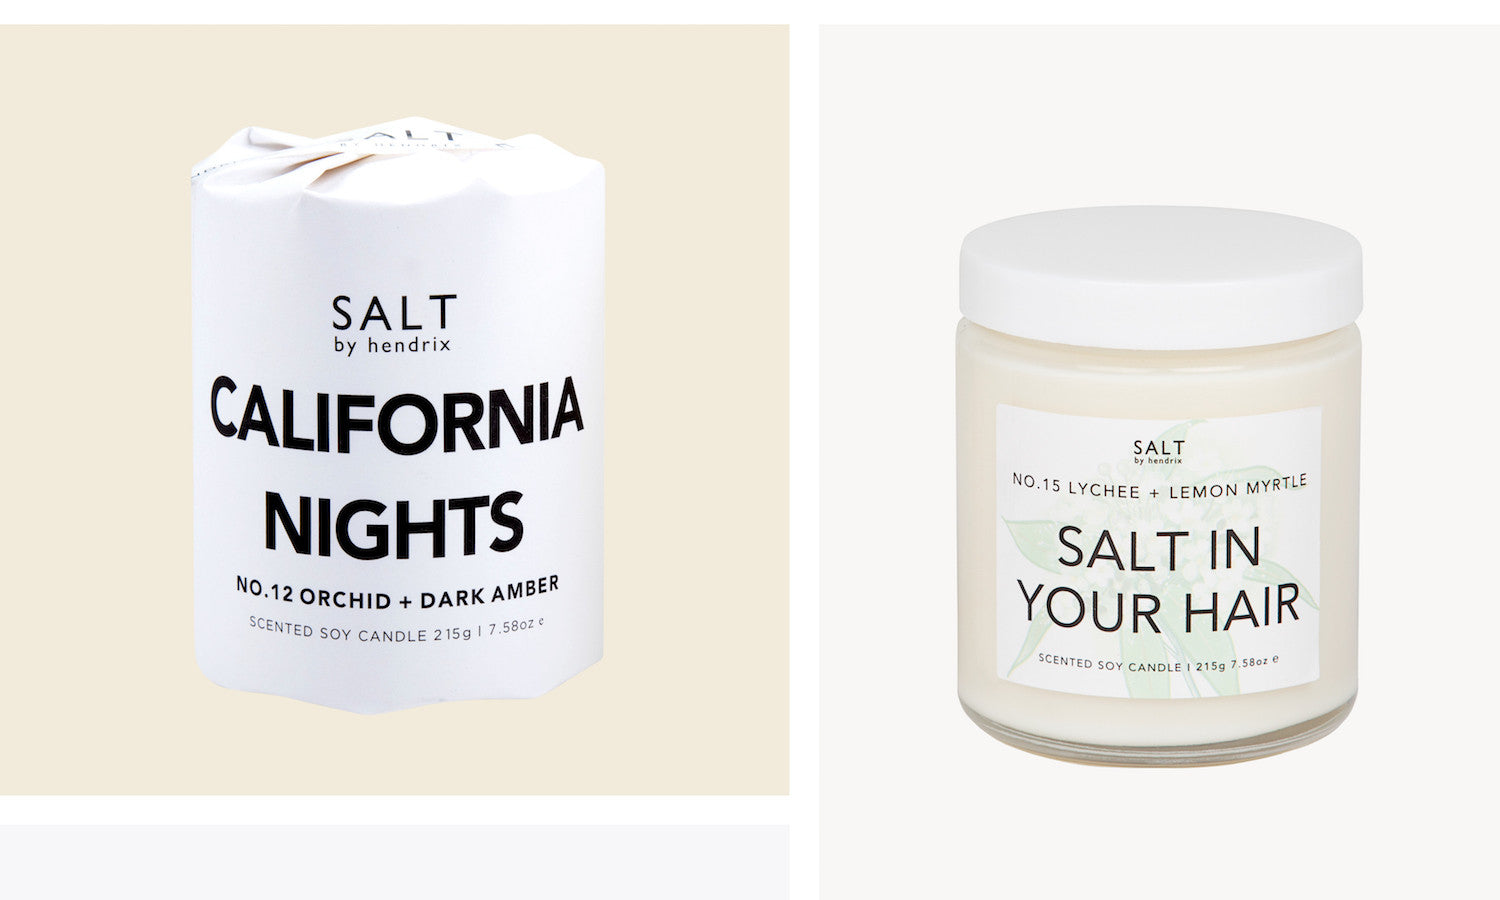 SALT by Hendrix - Organic Natural Skincare